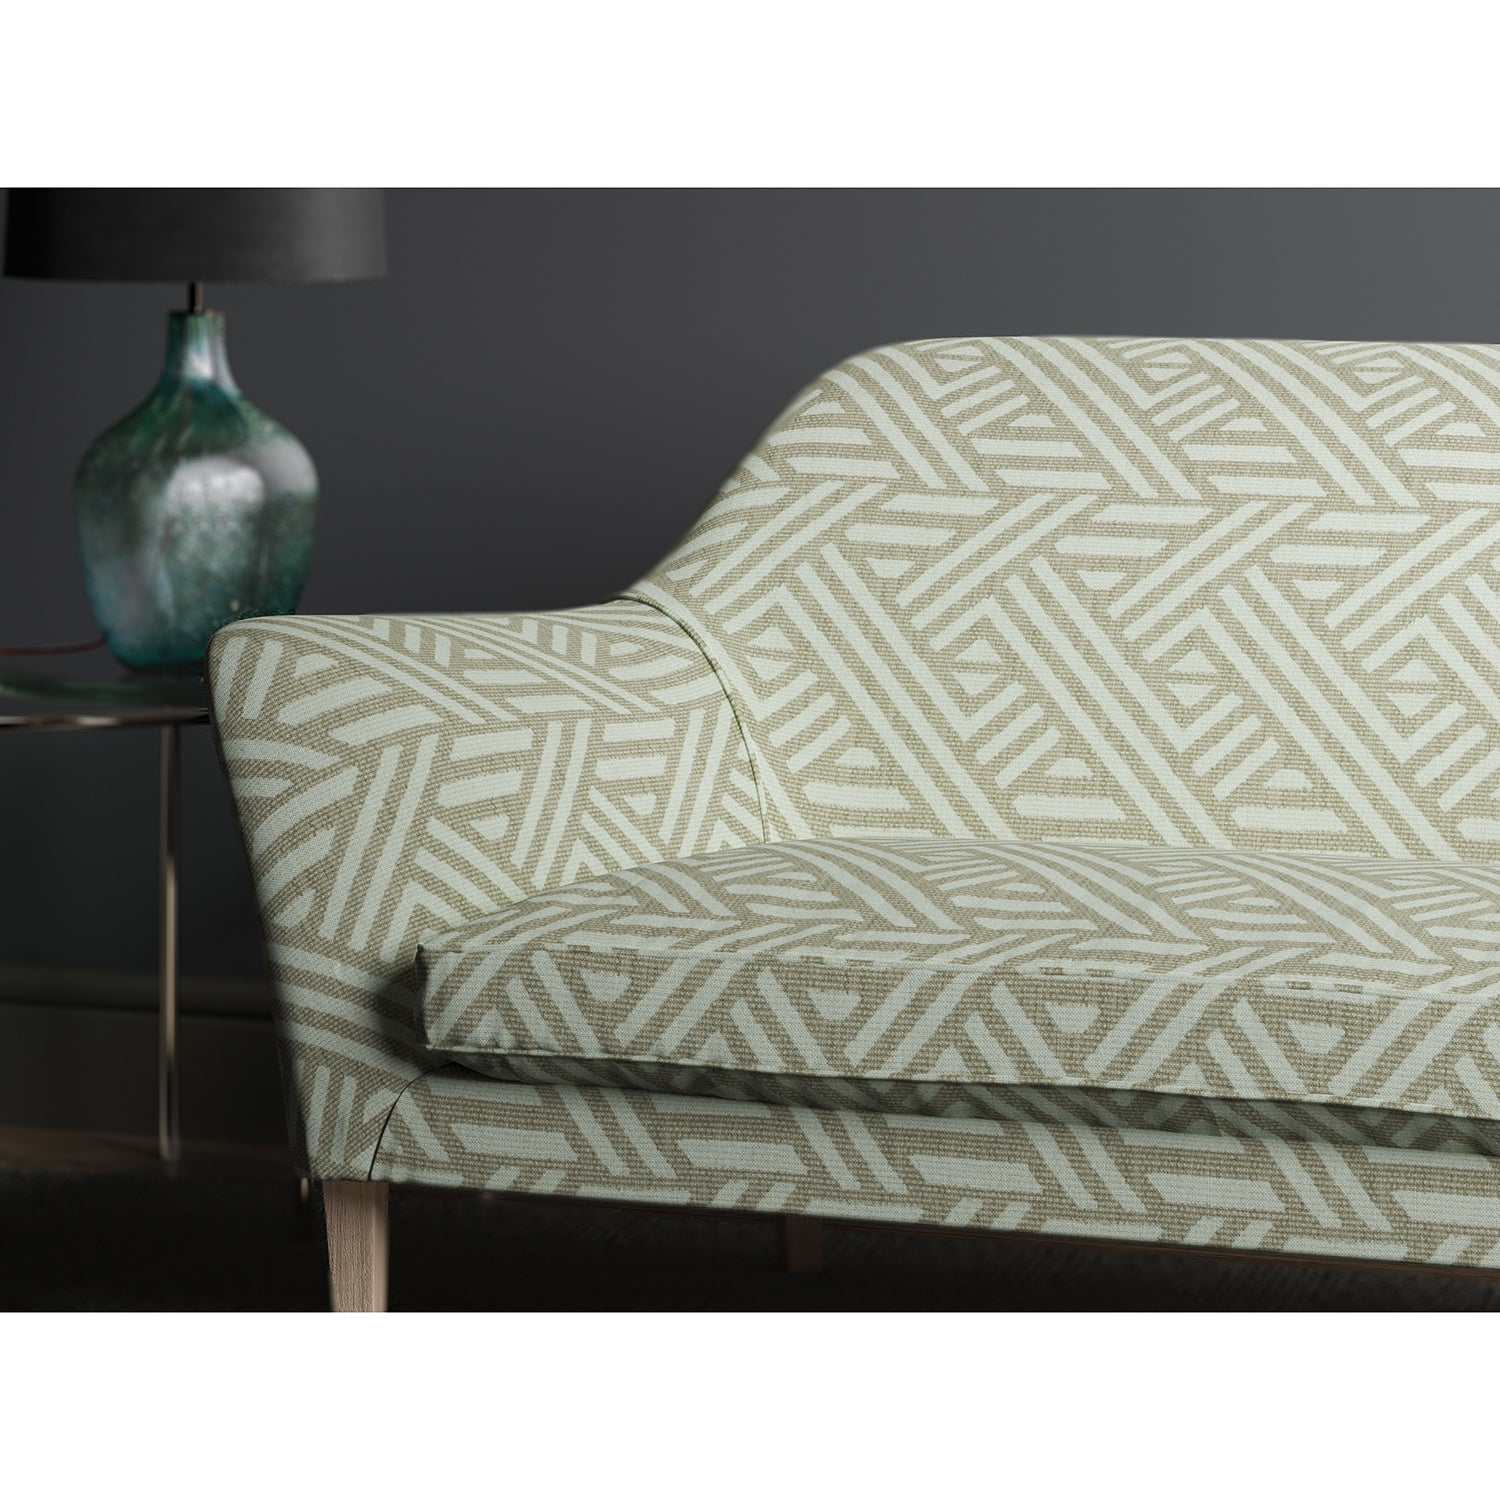 Sofa upholstered in design name Pampas colourway Dove from Tango